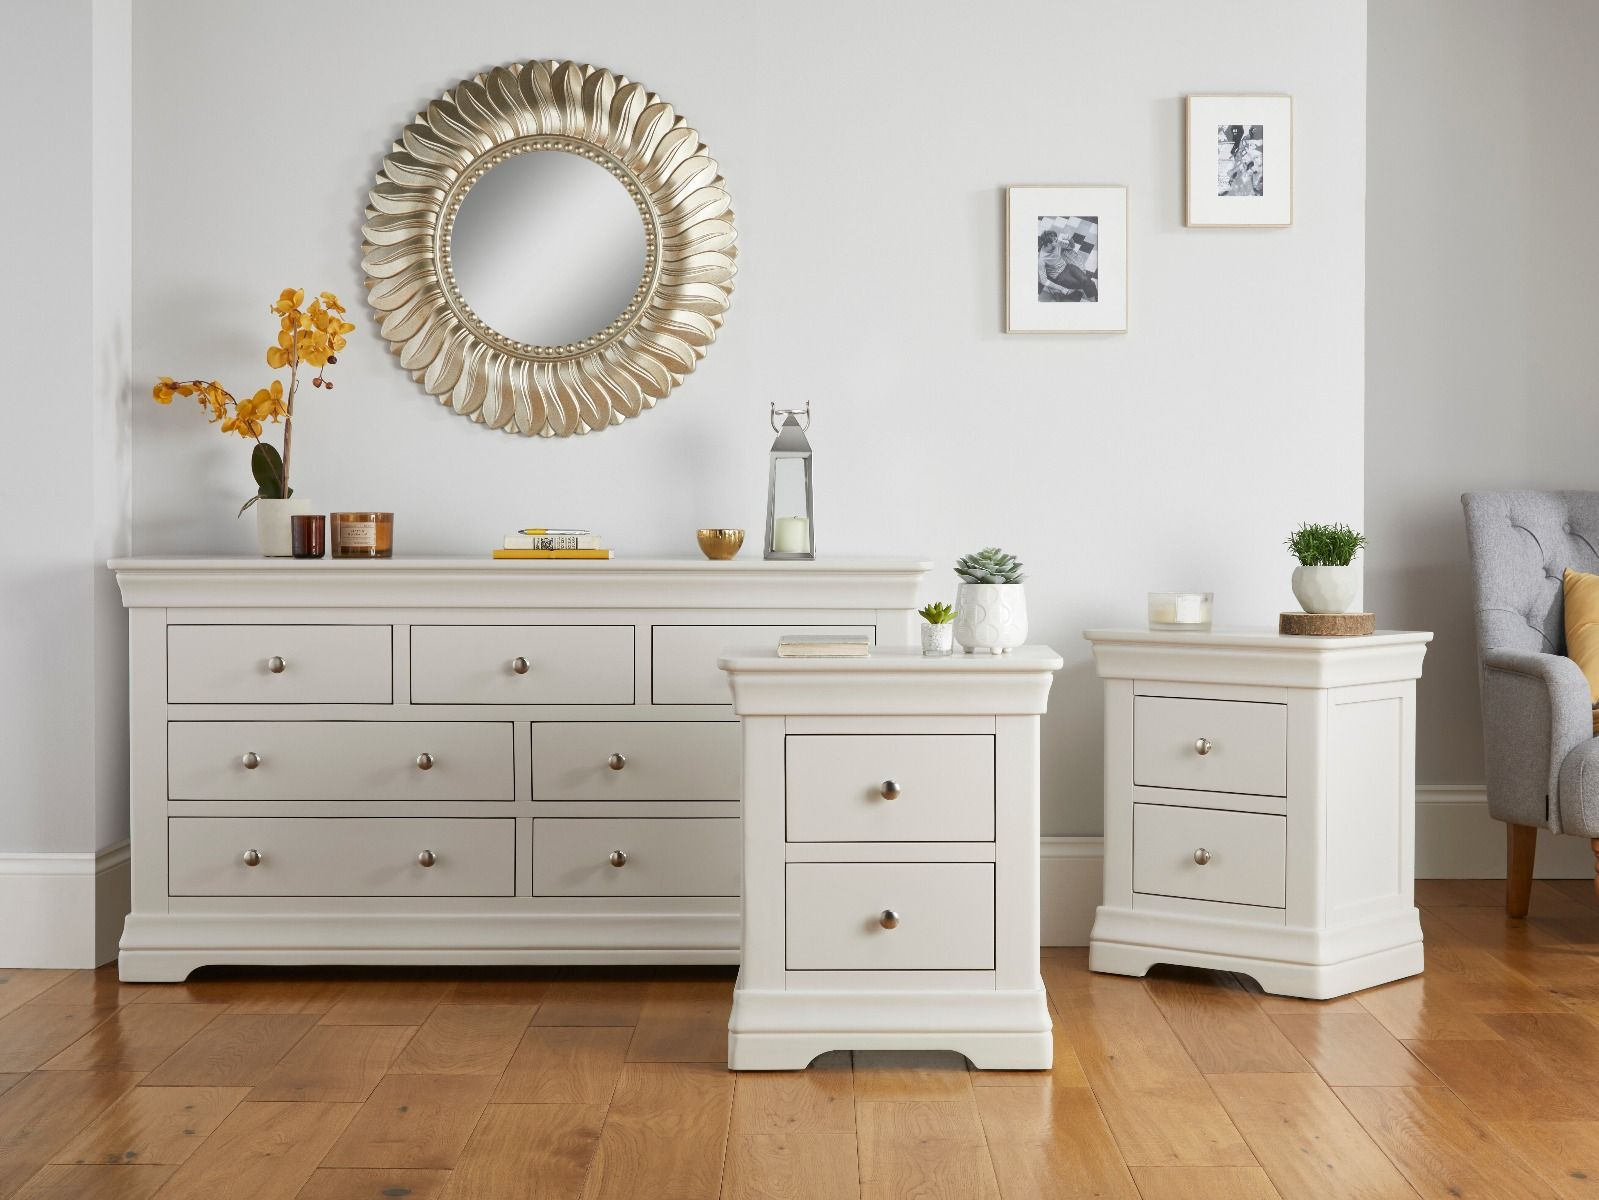 Bedroom Set Toulouse Grey 3 Over 4 Drawers And Pair Of Bedside Tables